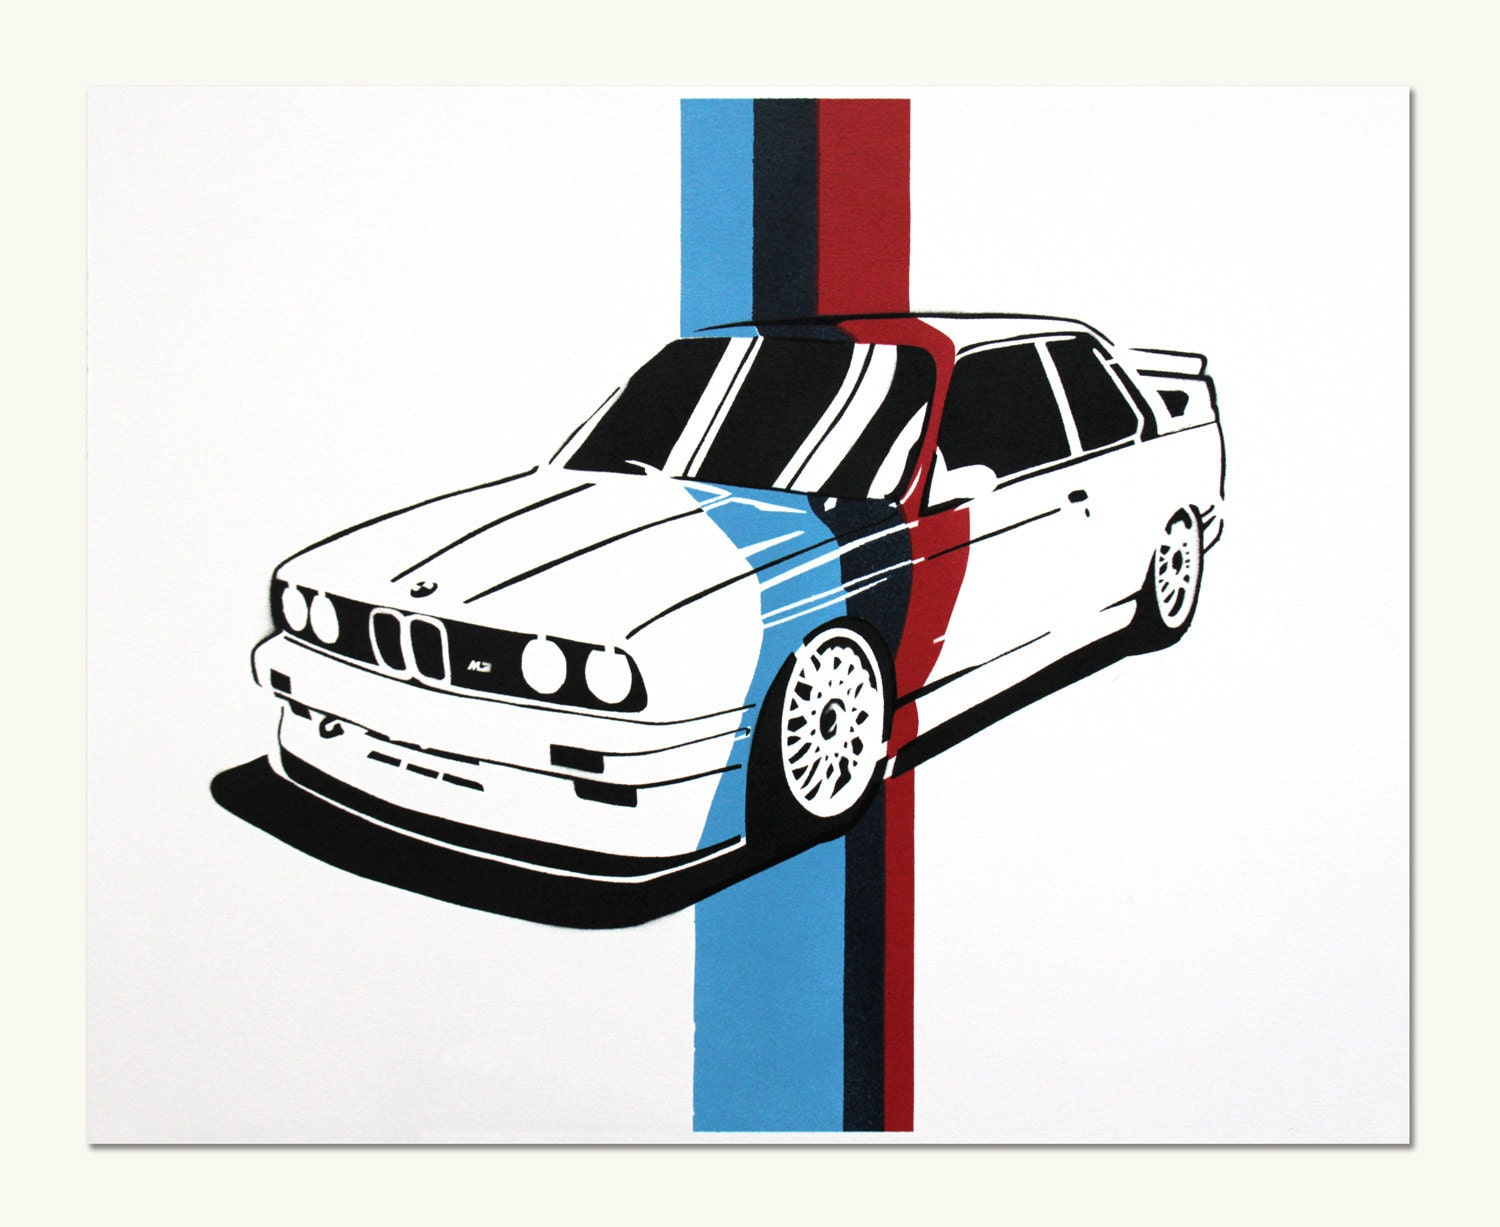 Car Drawing together with Bmw M4 Wallpapers likewise Smart forfour 453 in addition Your Questions Answered also Folding top repair kits. on bmw m3 drawings